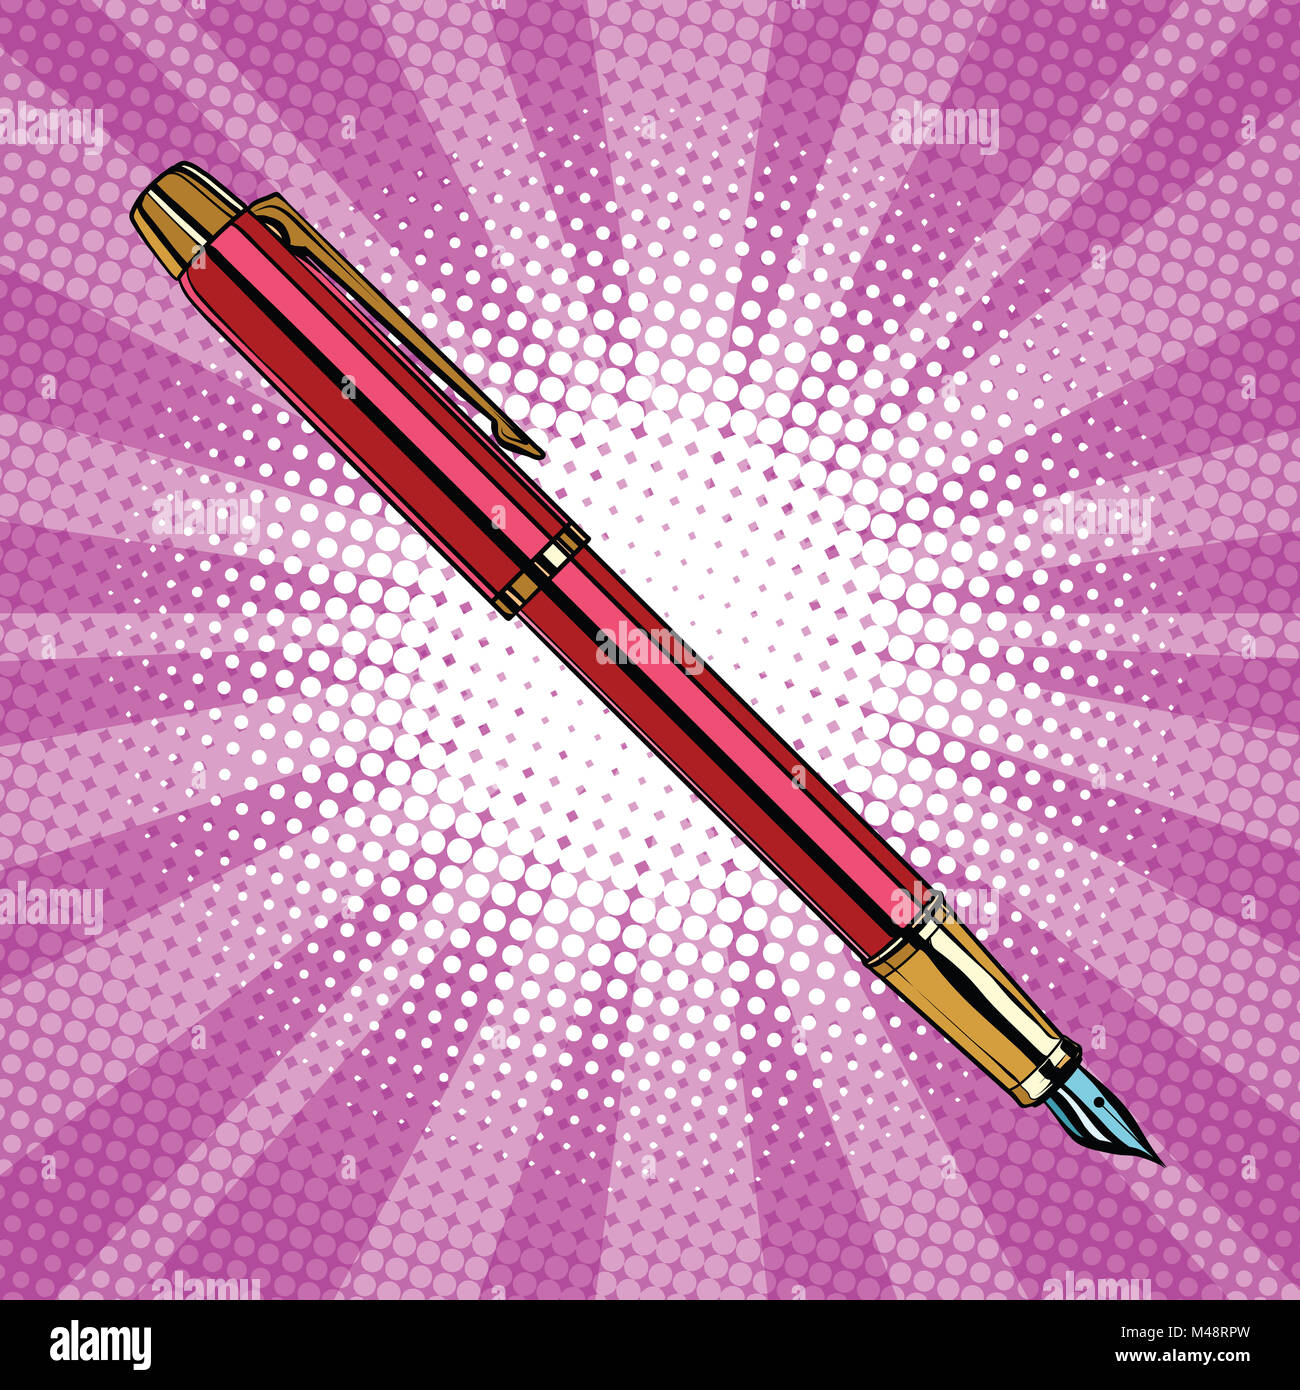 Expensive ink pen business accessory - Stock Image